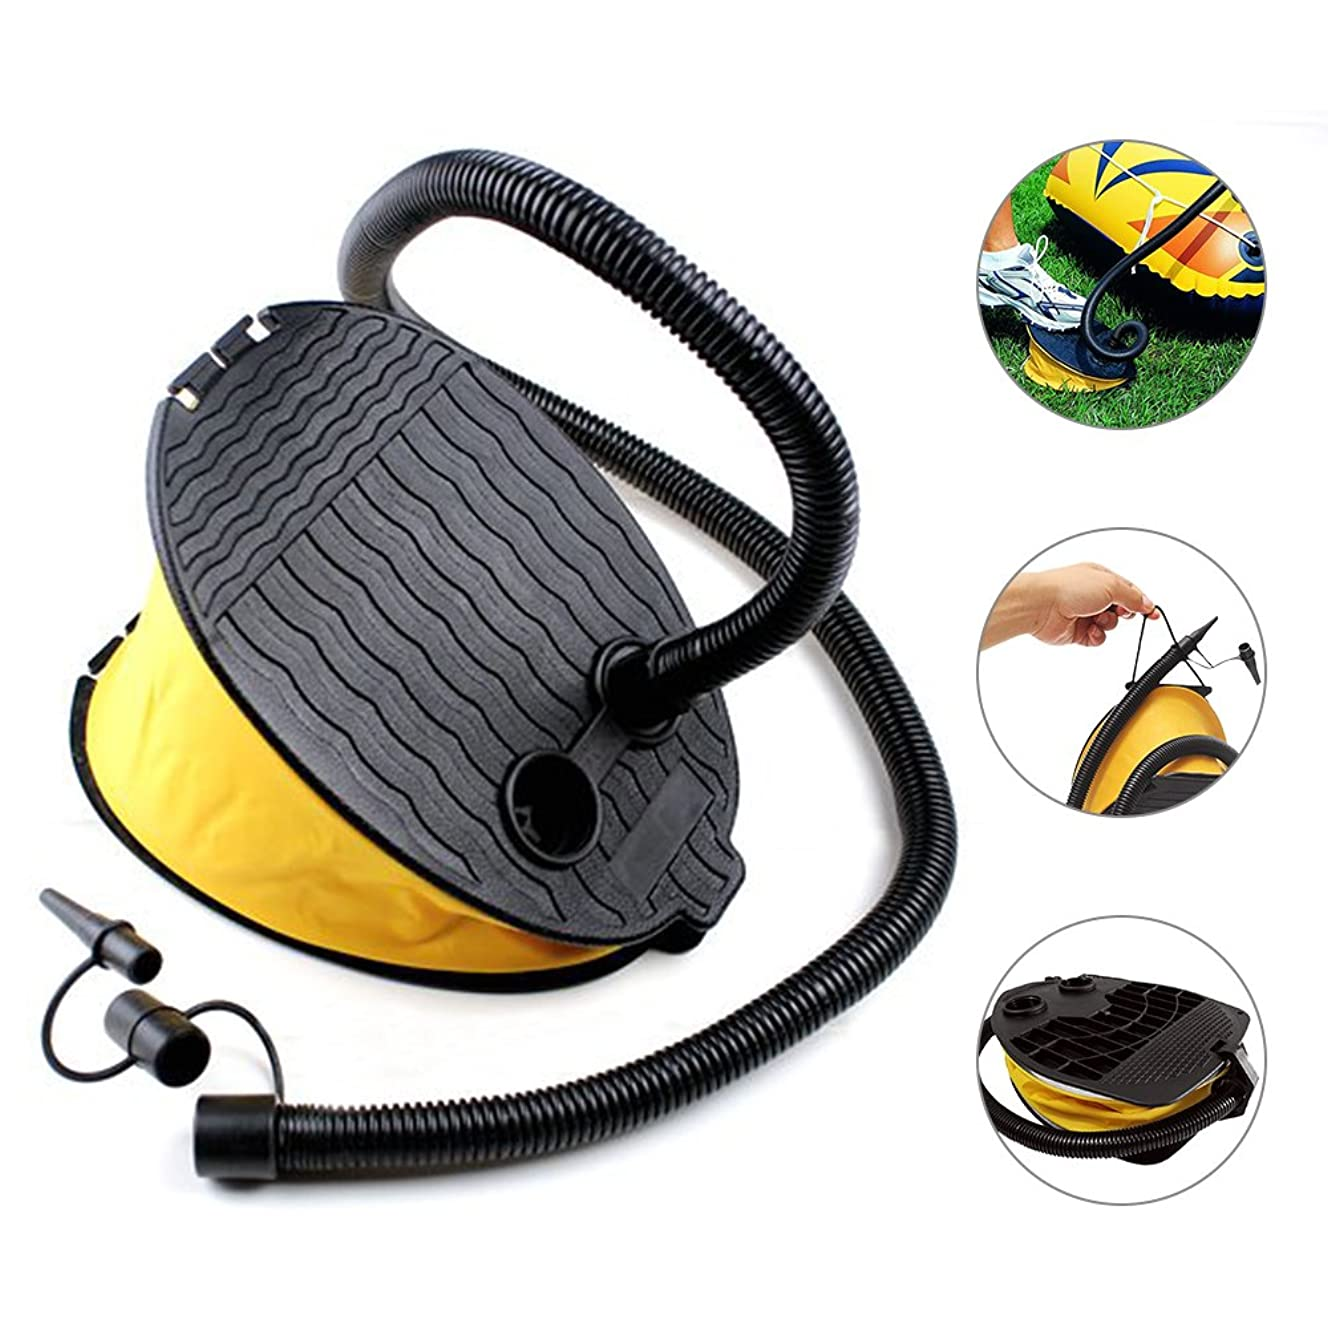 YOUDirect Foot Air Pump for Outdoor Balloon Airbed Inflatable Boat Inflatable Toy Swimming Ring Portable & Light-Weight With Multiple Nozzles, Yellow